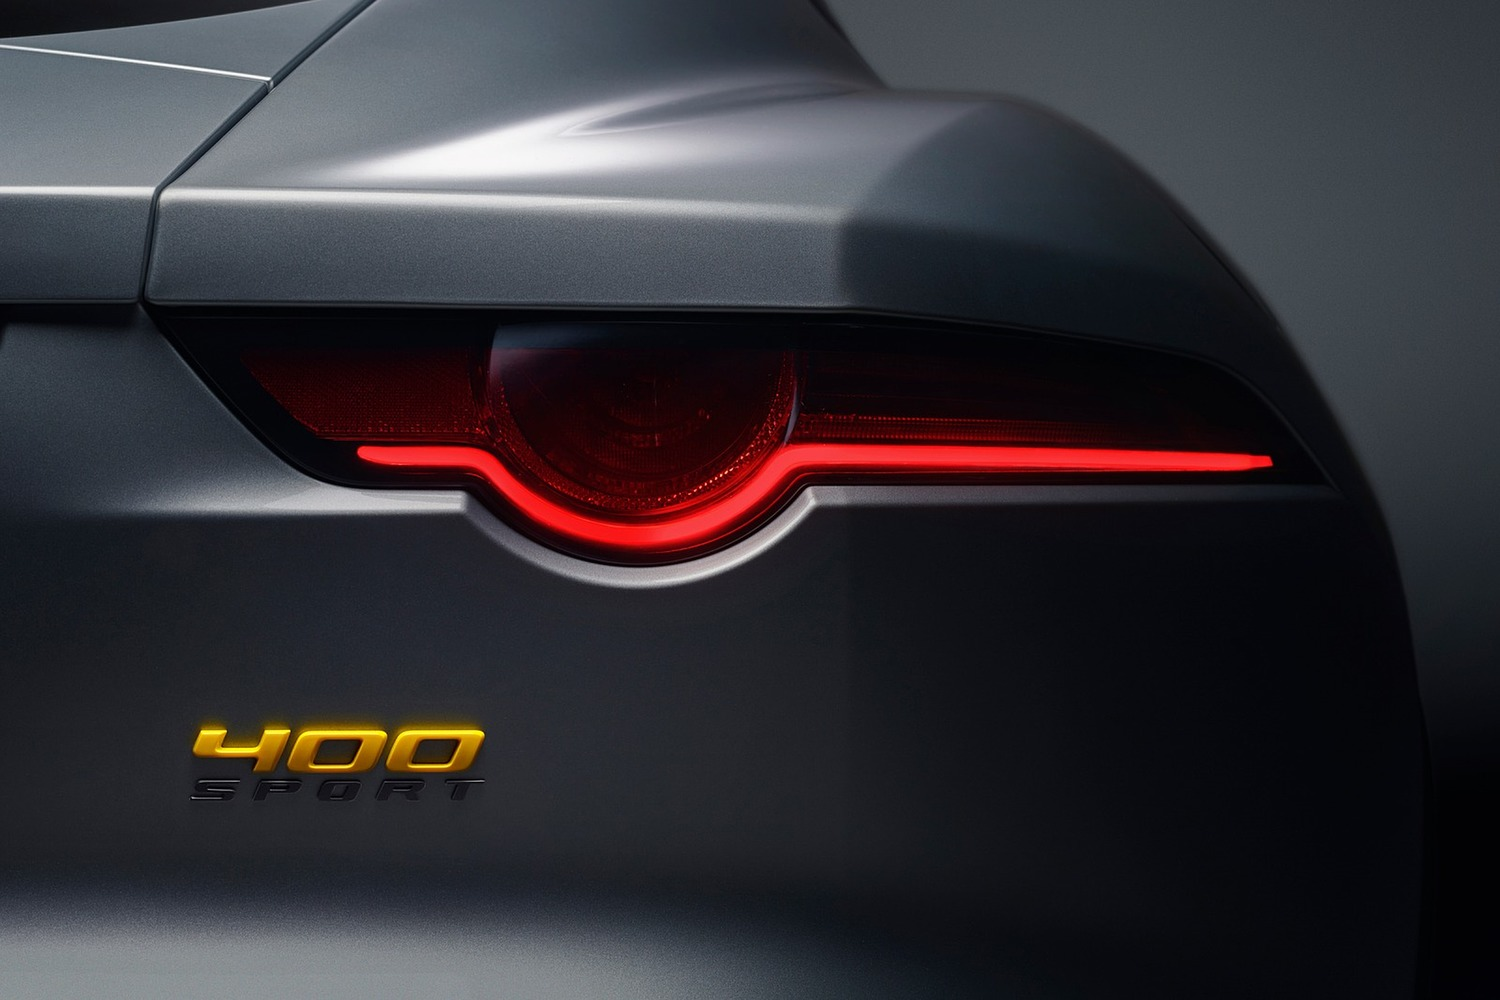 2018 Jaguar F-TYPE 400 Sport Coupe Rear Badge